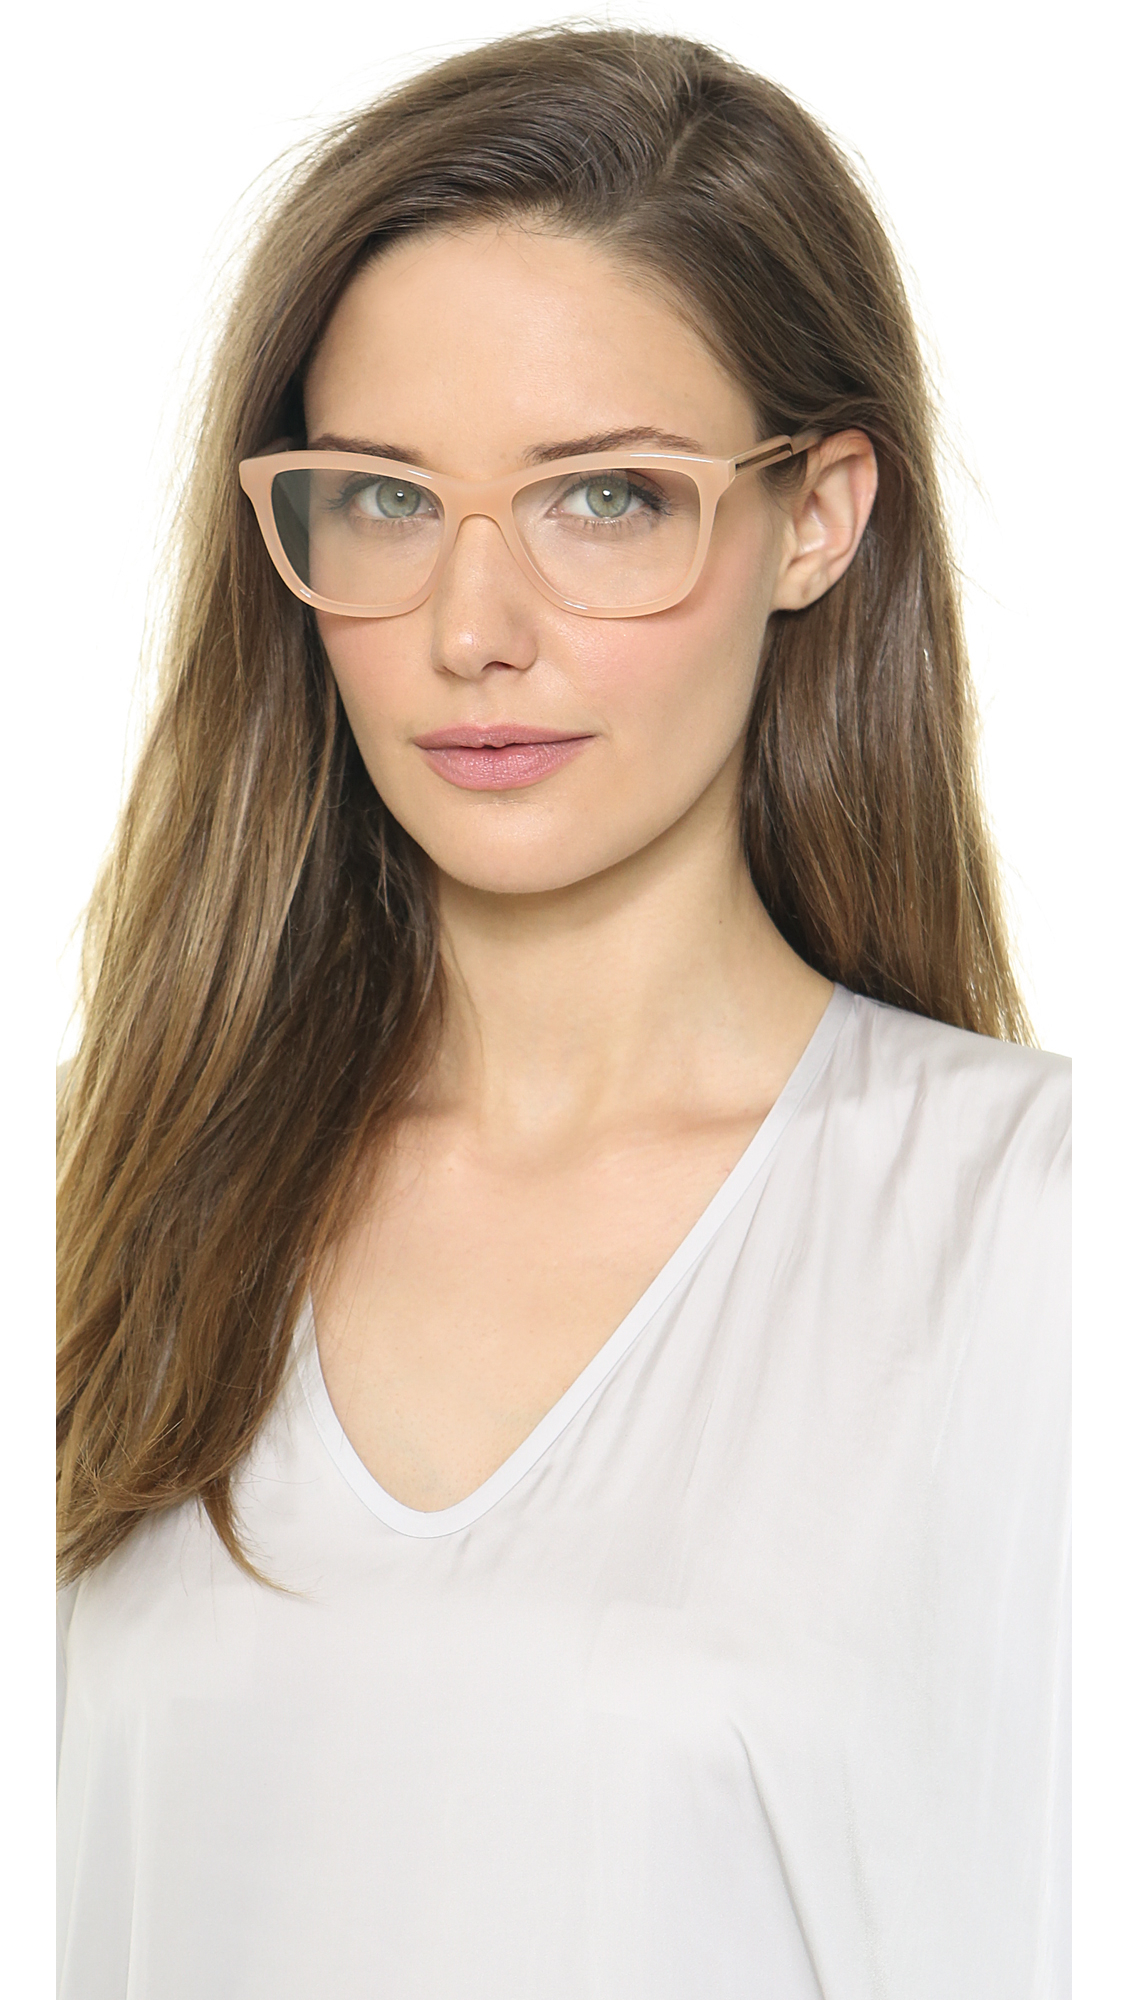 Stella mccartney Square Glasses - Nude in Natural Lyst